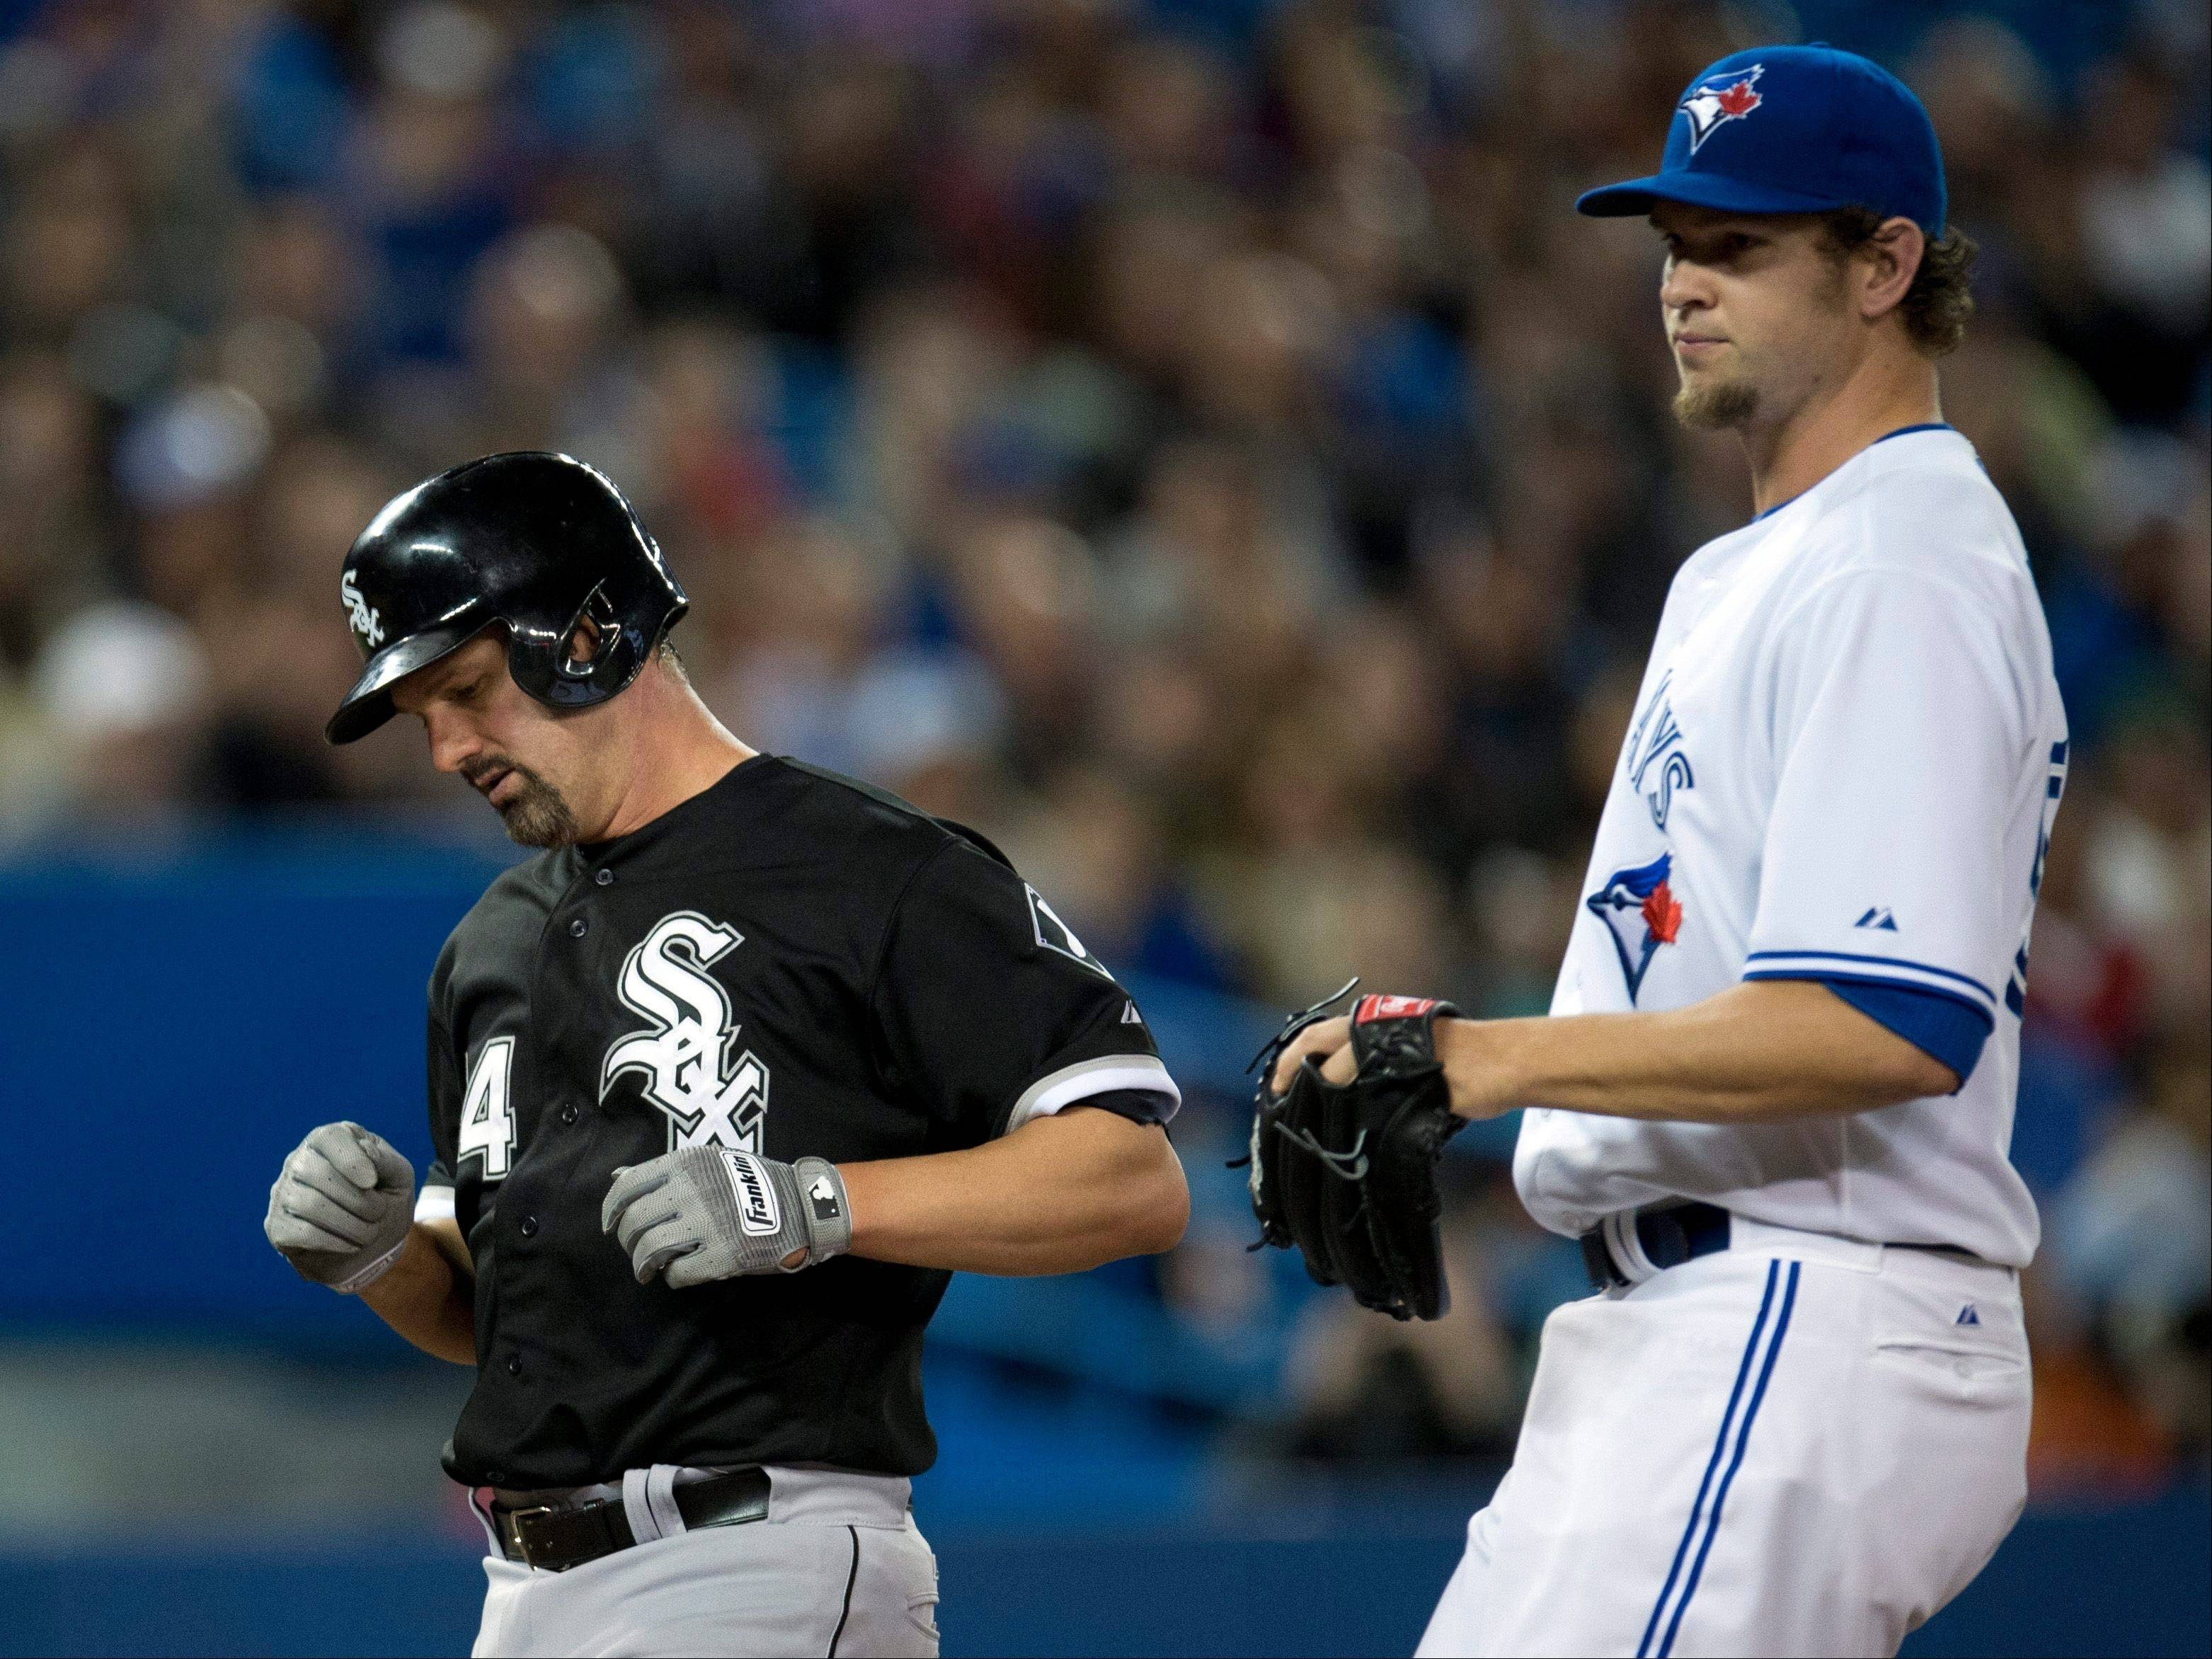 Toronto Blue Jays' Colby Rasmus, right, celebrates his solo home run as he crosses the plate in front of Chicago White Sox catcher Hector Gimenez Tuesday night in Toronto. The Sox won 4-3.